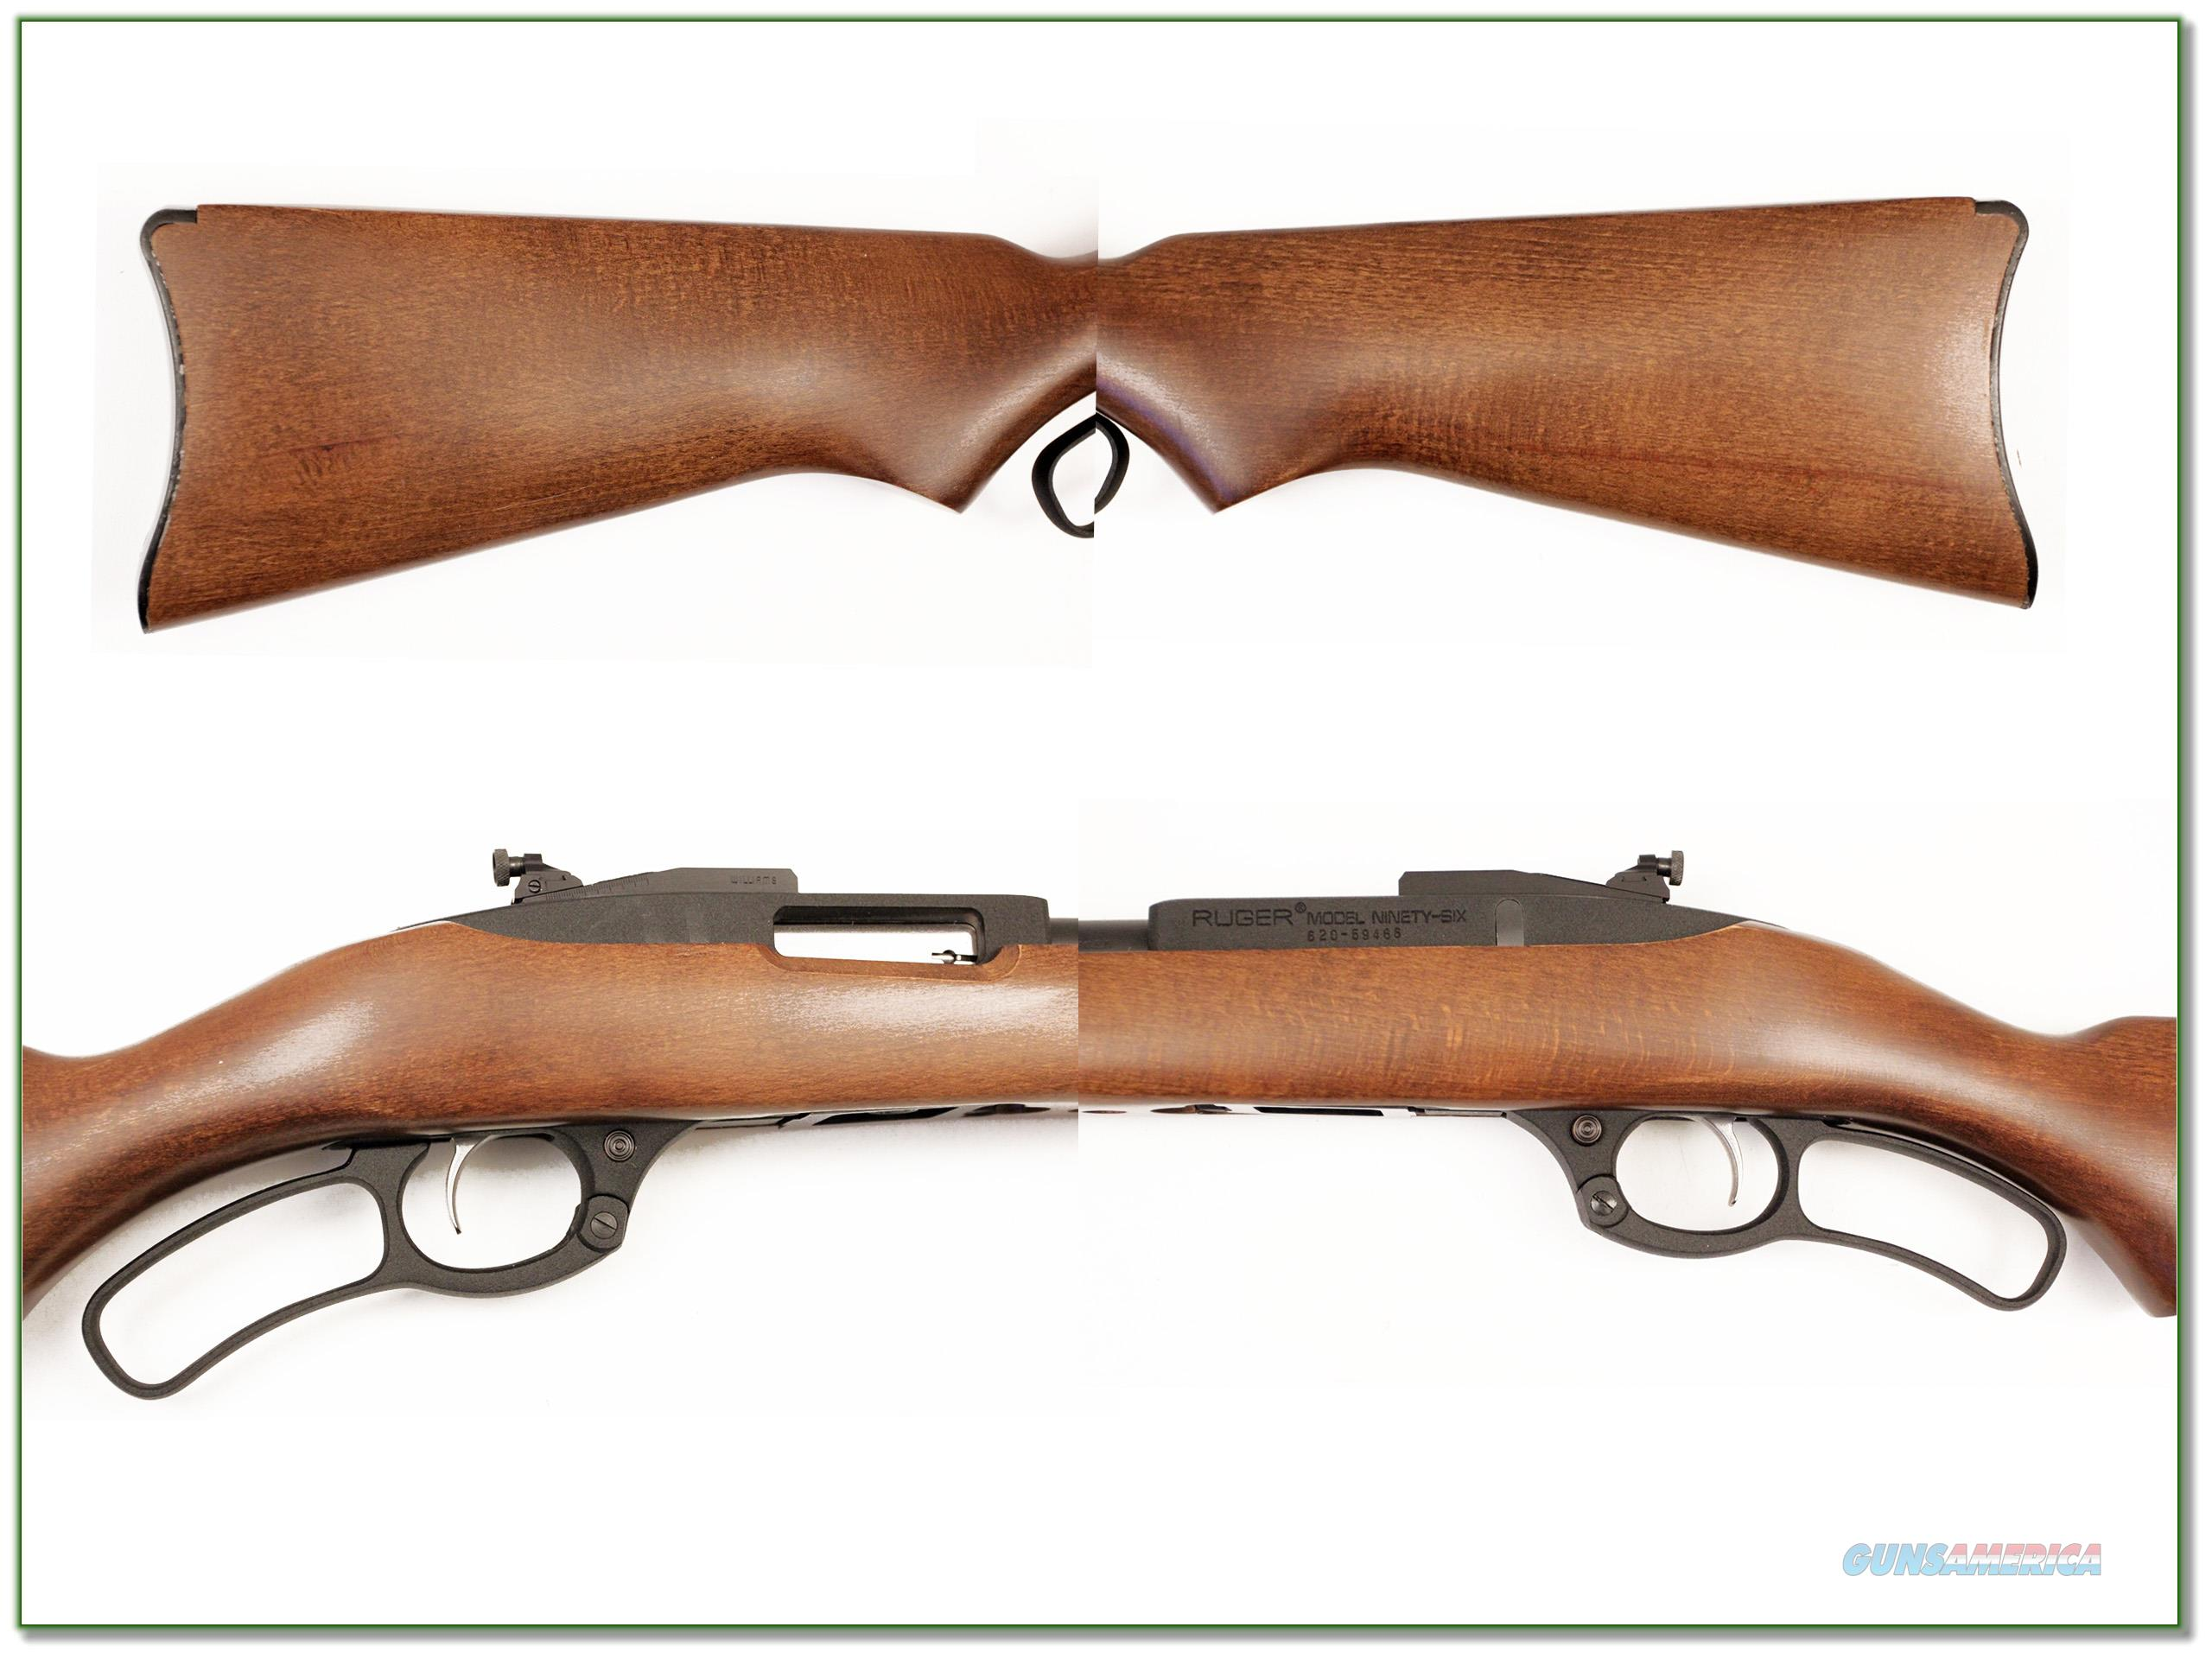 Magnum Insurance Near Me >> Ruger Model 96 22 Magnum Collector Condition 3 ... for sale